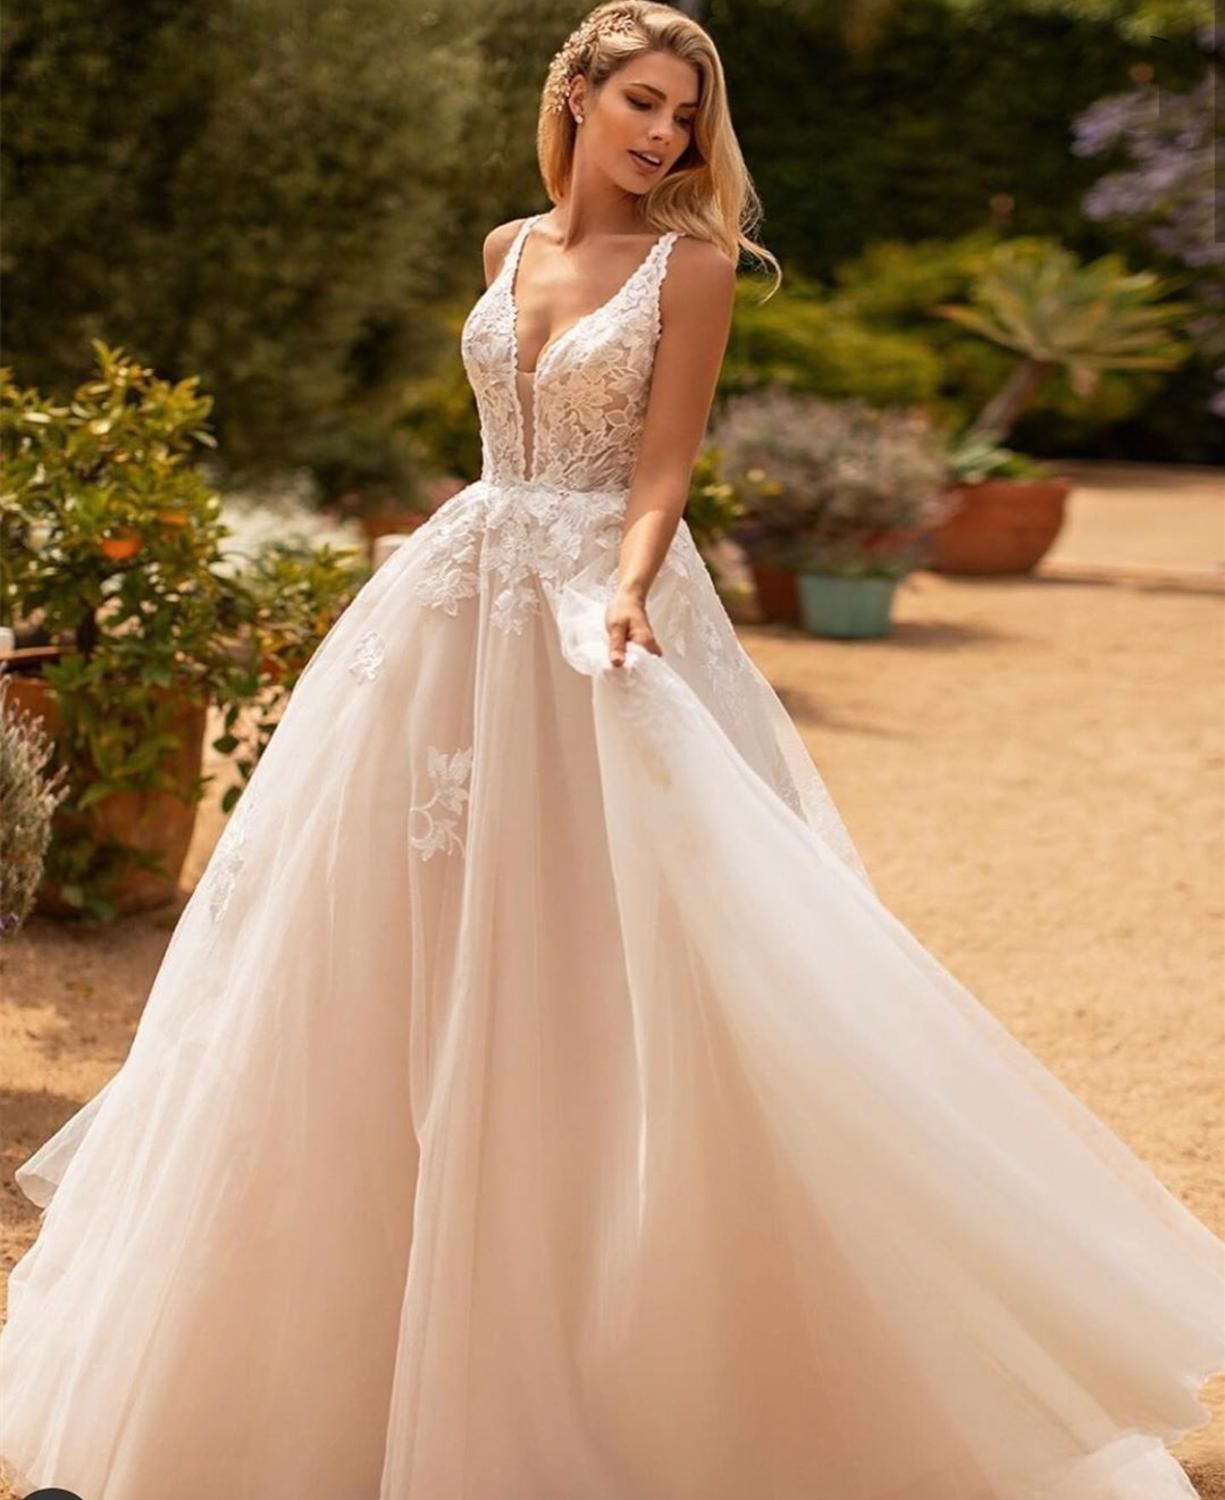 2020 Long  A-Line V-Neck Floor Length Wedding Dress  Tulle Lace Appliuqes Bridal Gowns Backless  Vintage Style Charming 2019